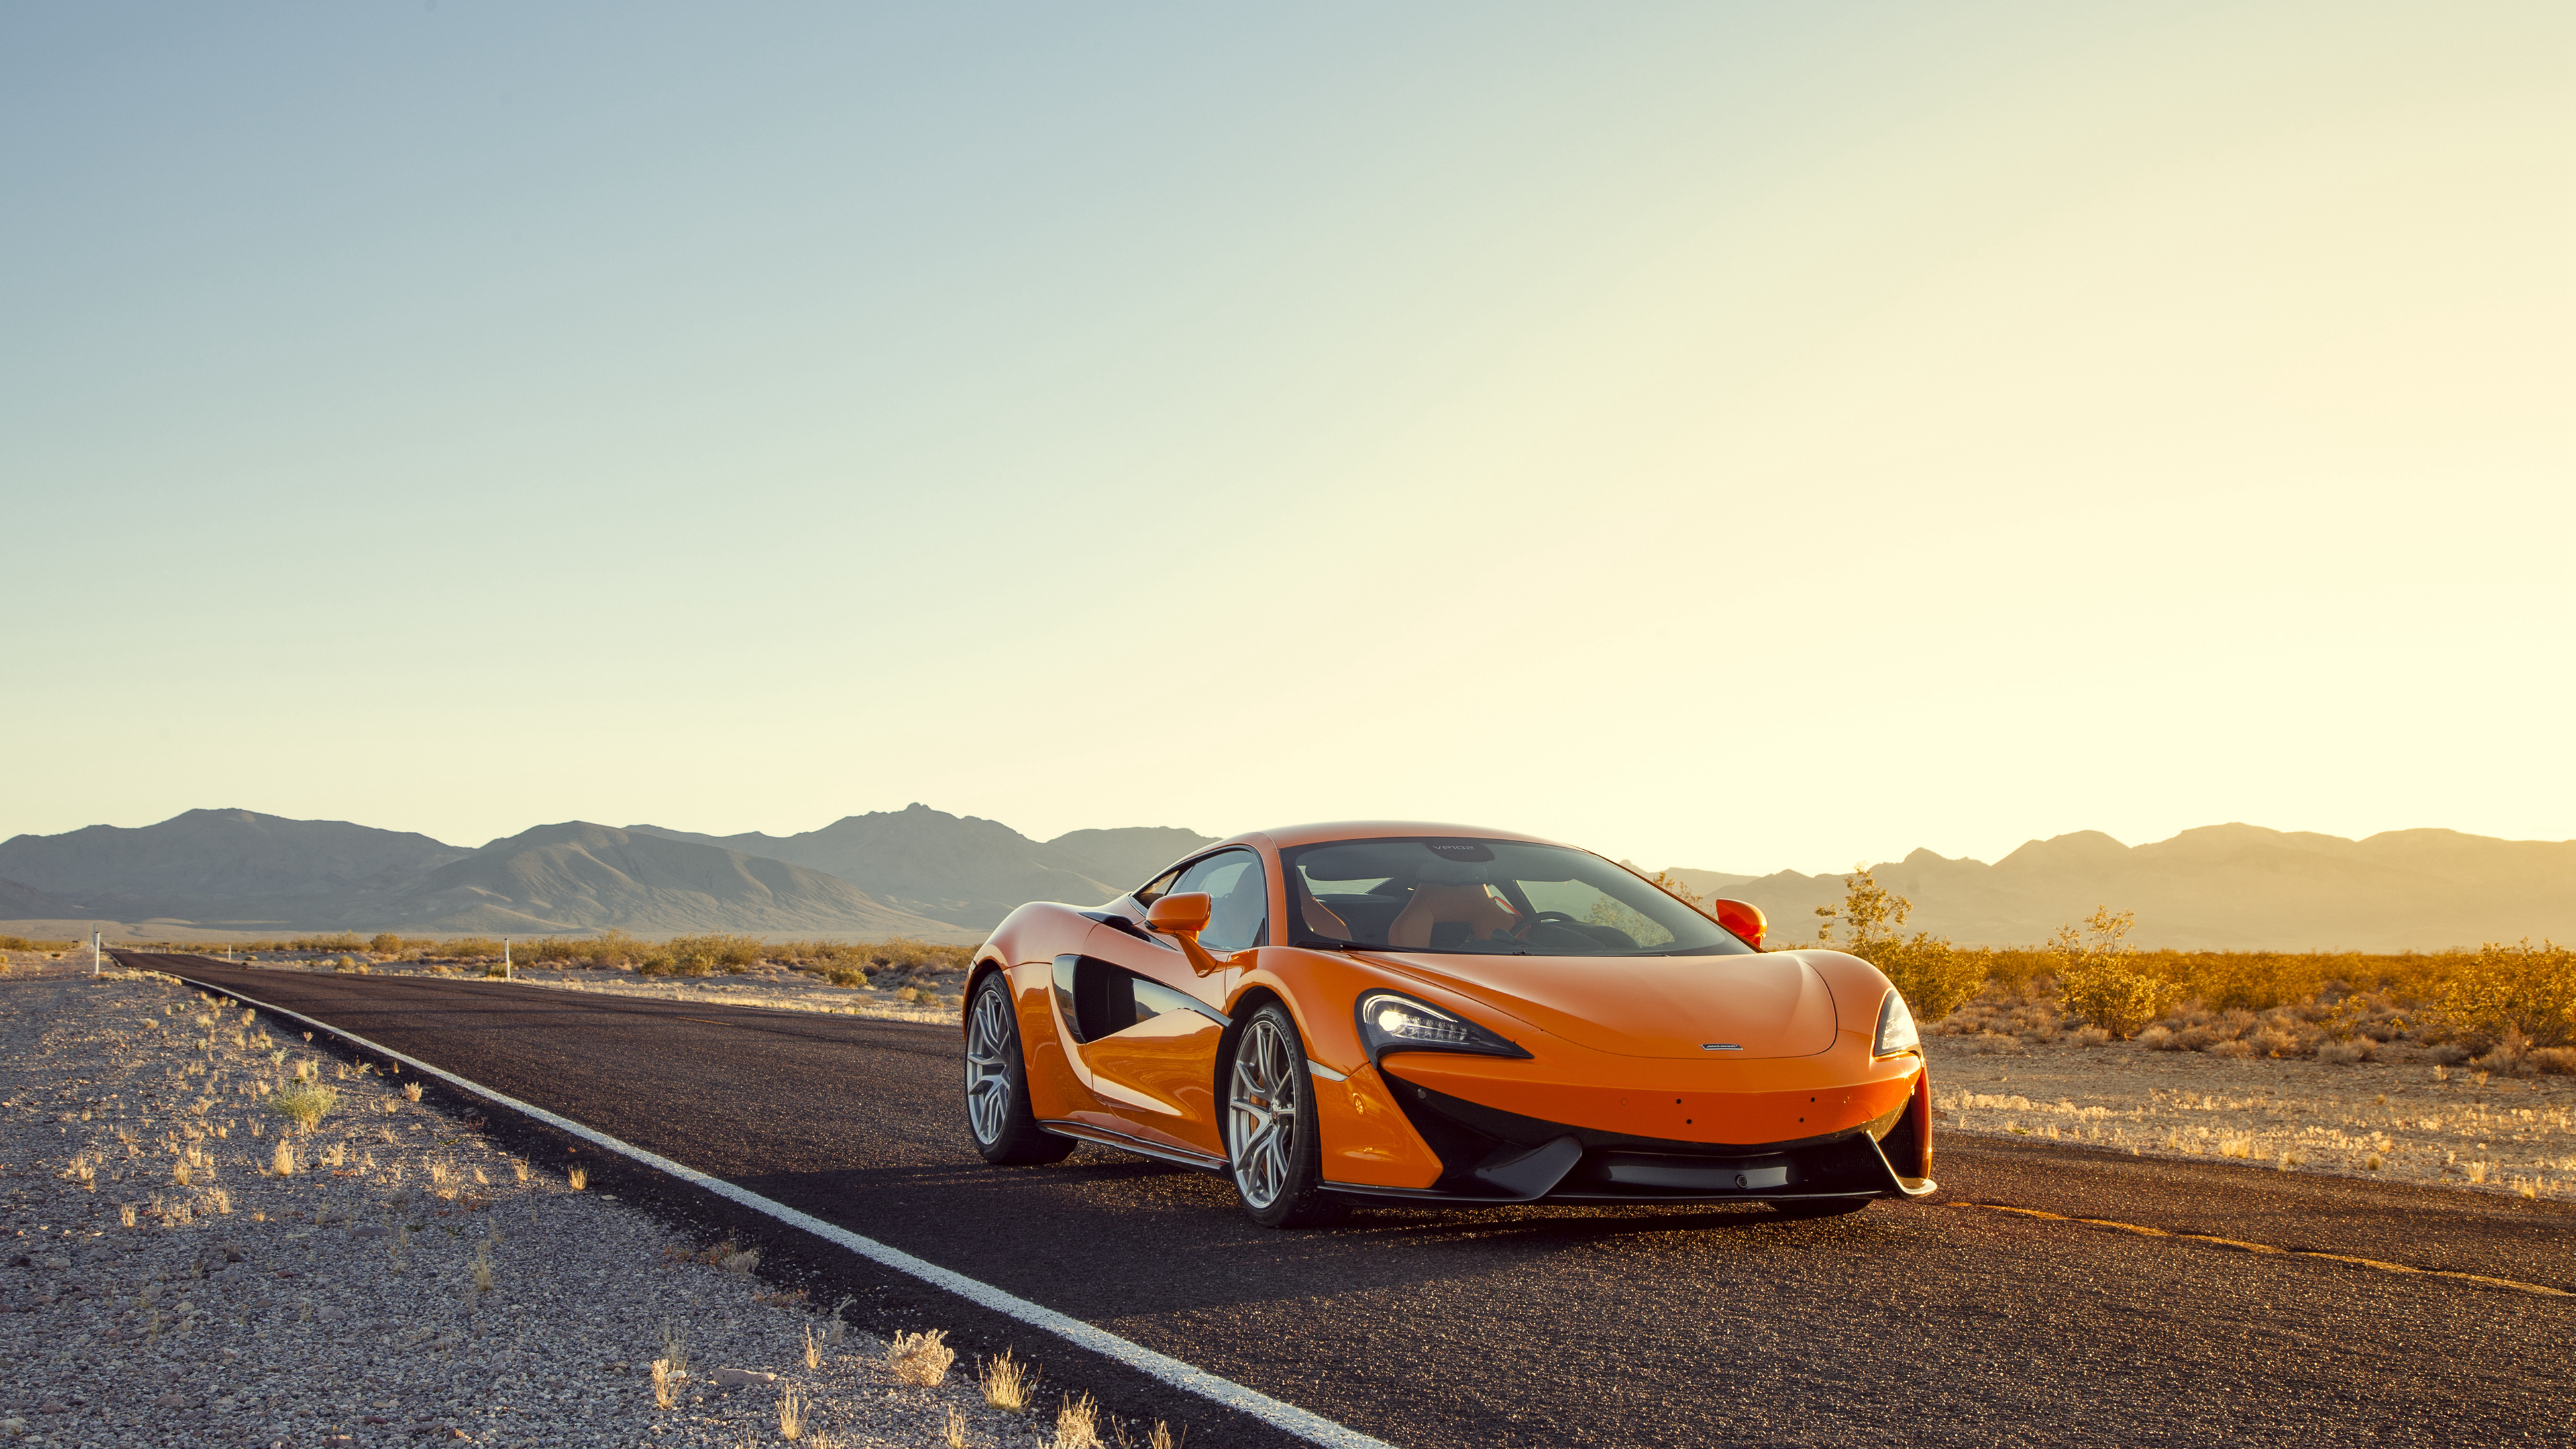 mclaren 570s sports car 1539104507 - Mclaren 570S Sports Car - mclaren wallpapers, cars wallpapers